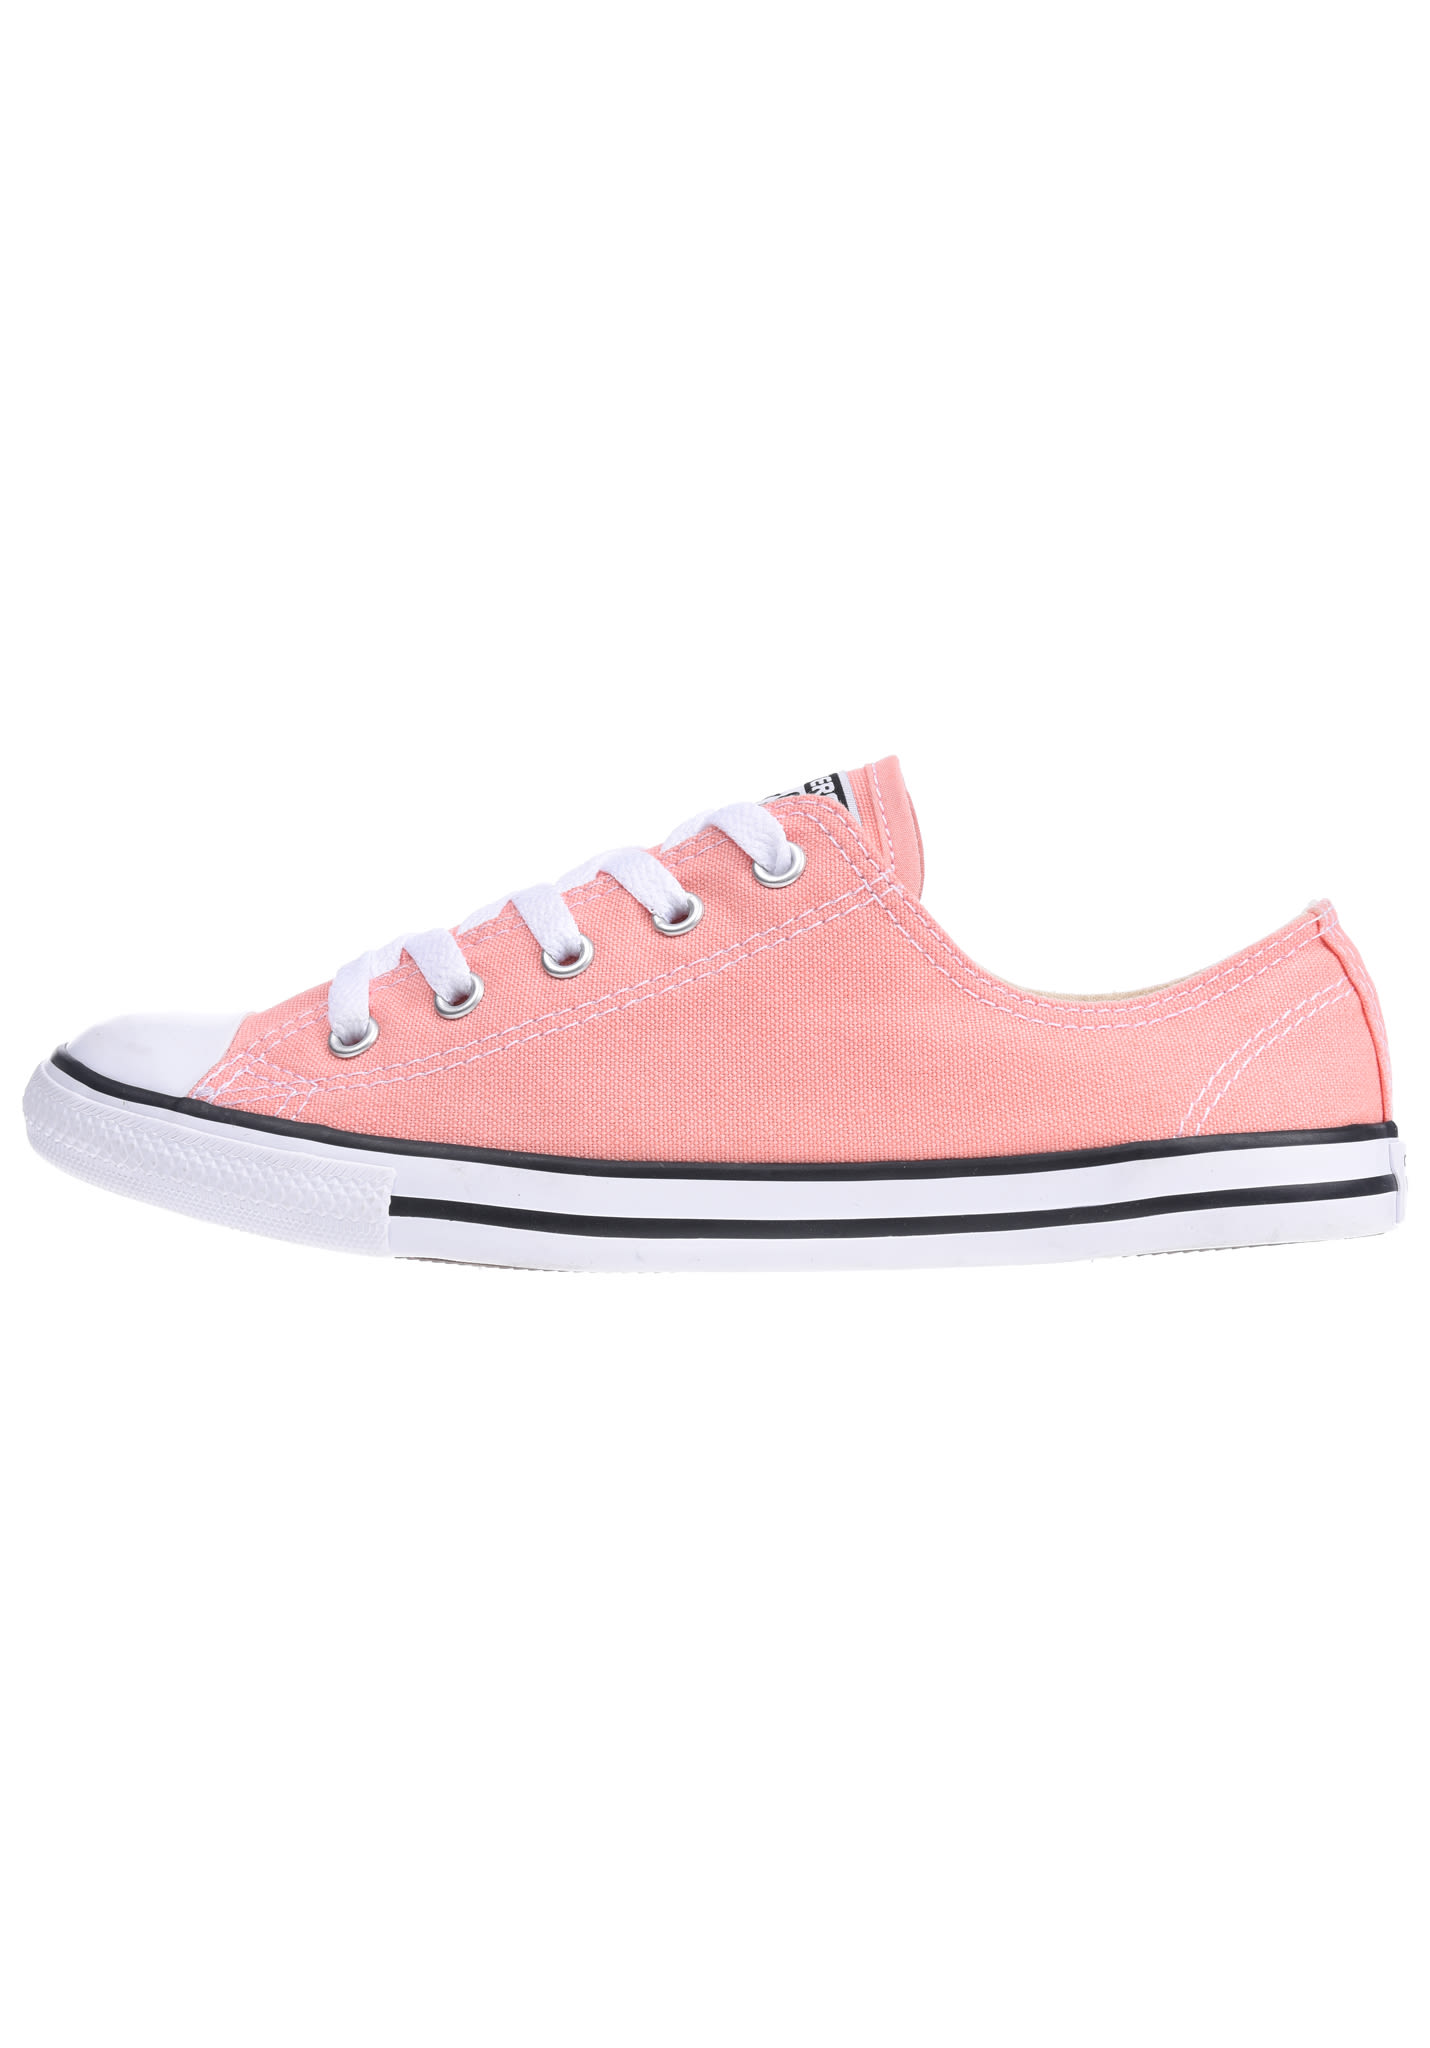 f9237556b53a Converse Chuck Taylor All Star Dainty OX - Sneakers for Women - Pink -  Planet Sports